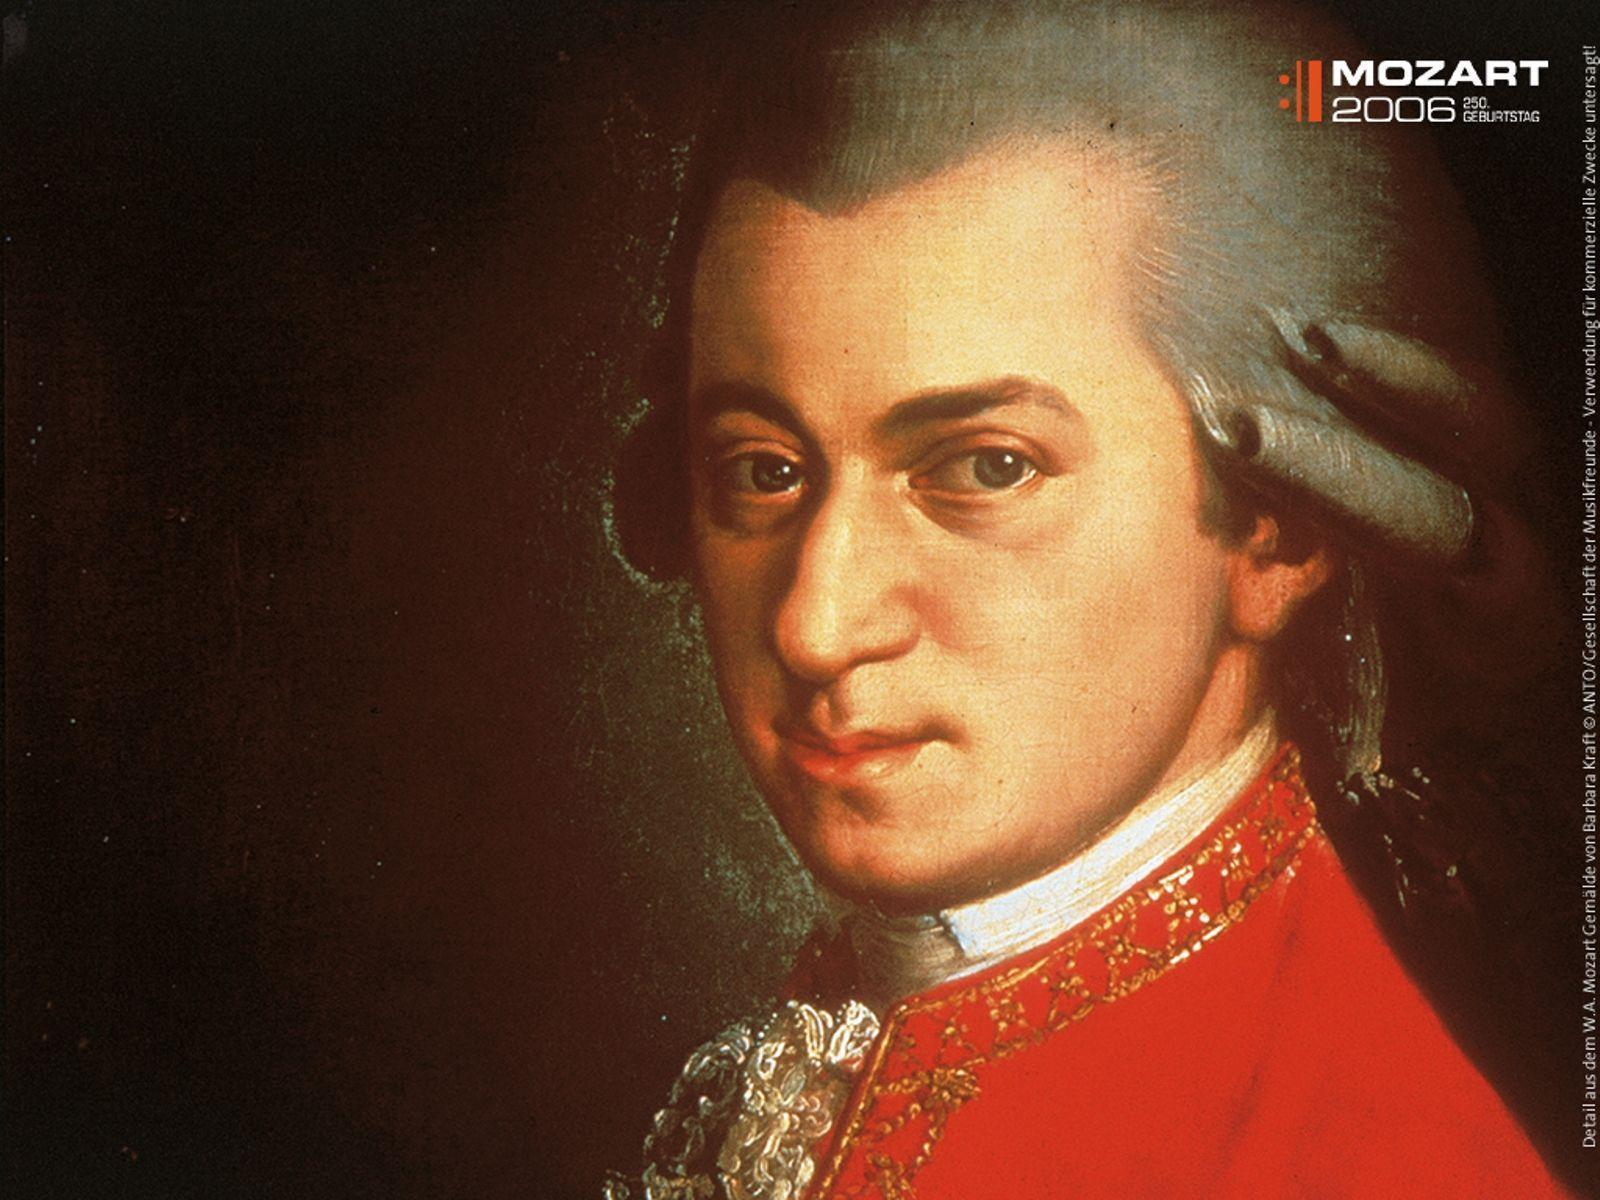 mozart music artwork #Oa9